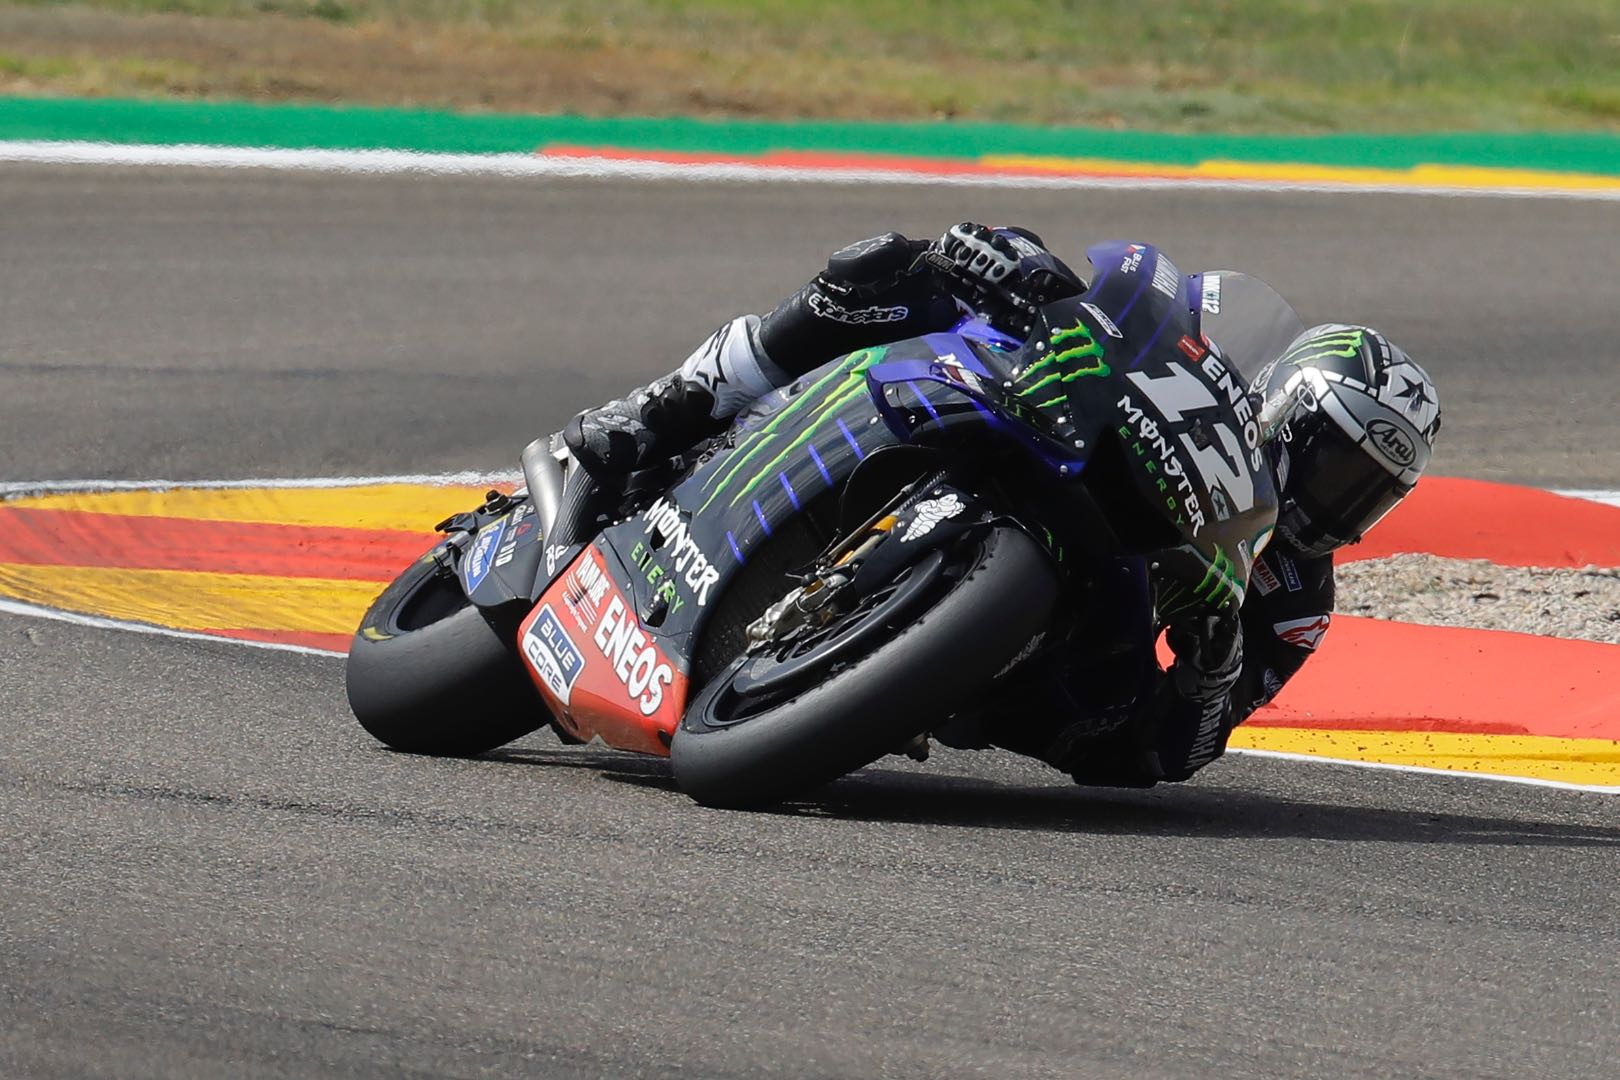 Yamaha's Maverick Vinales at Aragon MotoGP Friday practice 2019